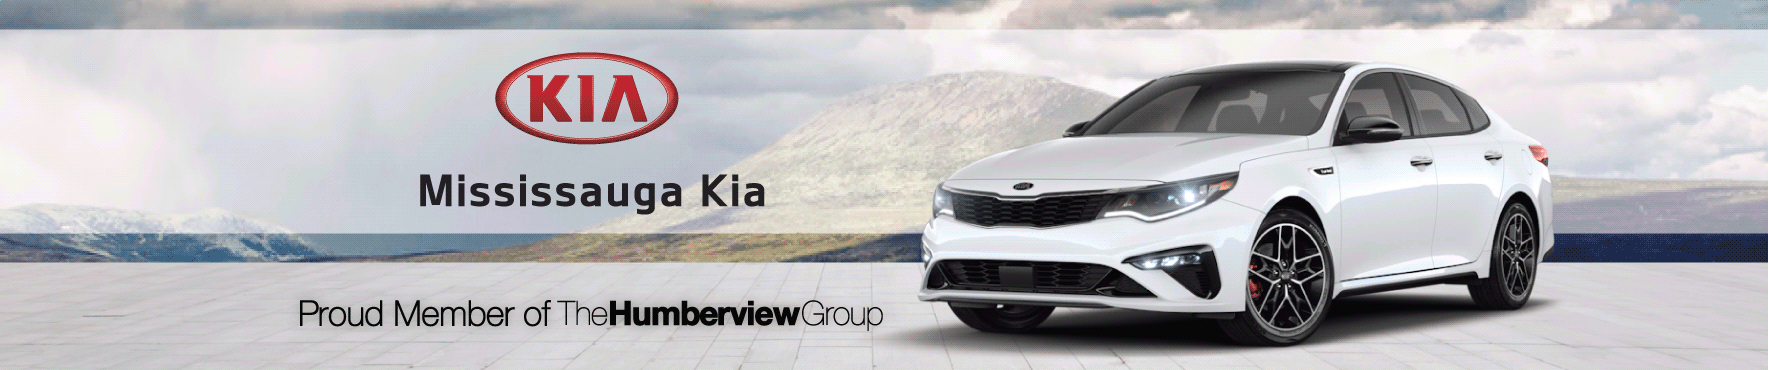 Kia-Dealership-Near-Milton-Mississauga-Kia